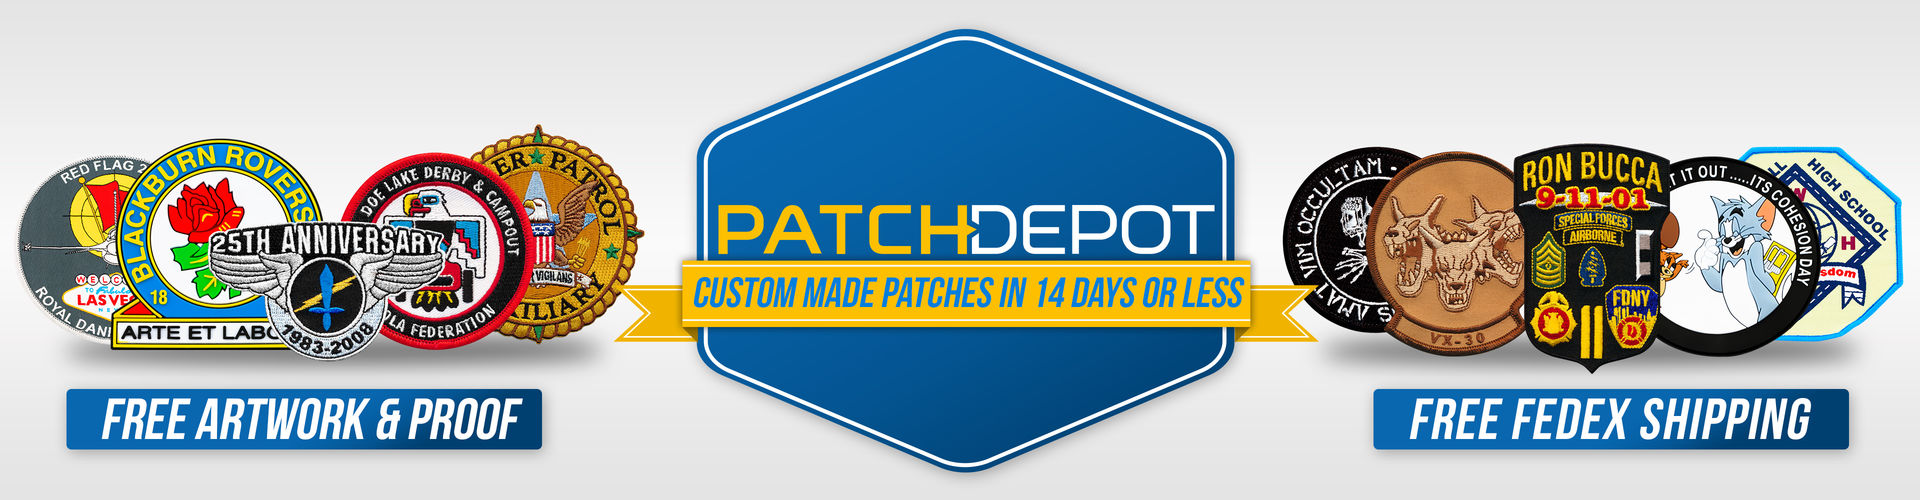 Patch Depot - Custom Made Patches in 14 Days or Less